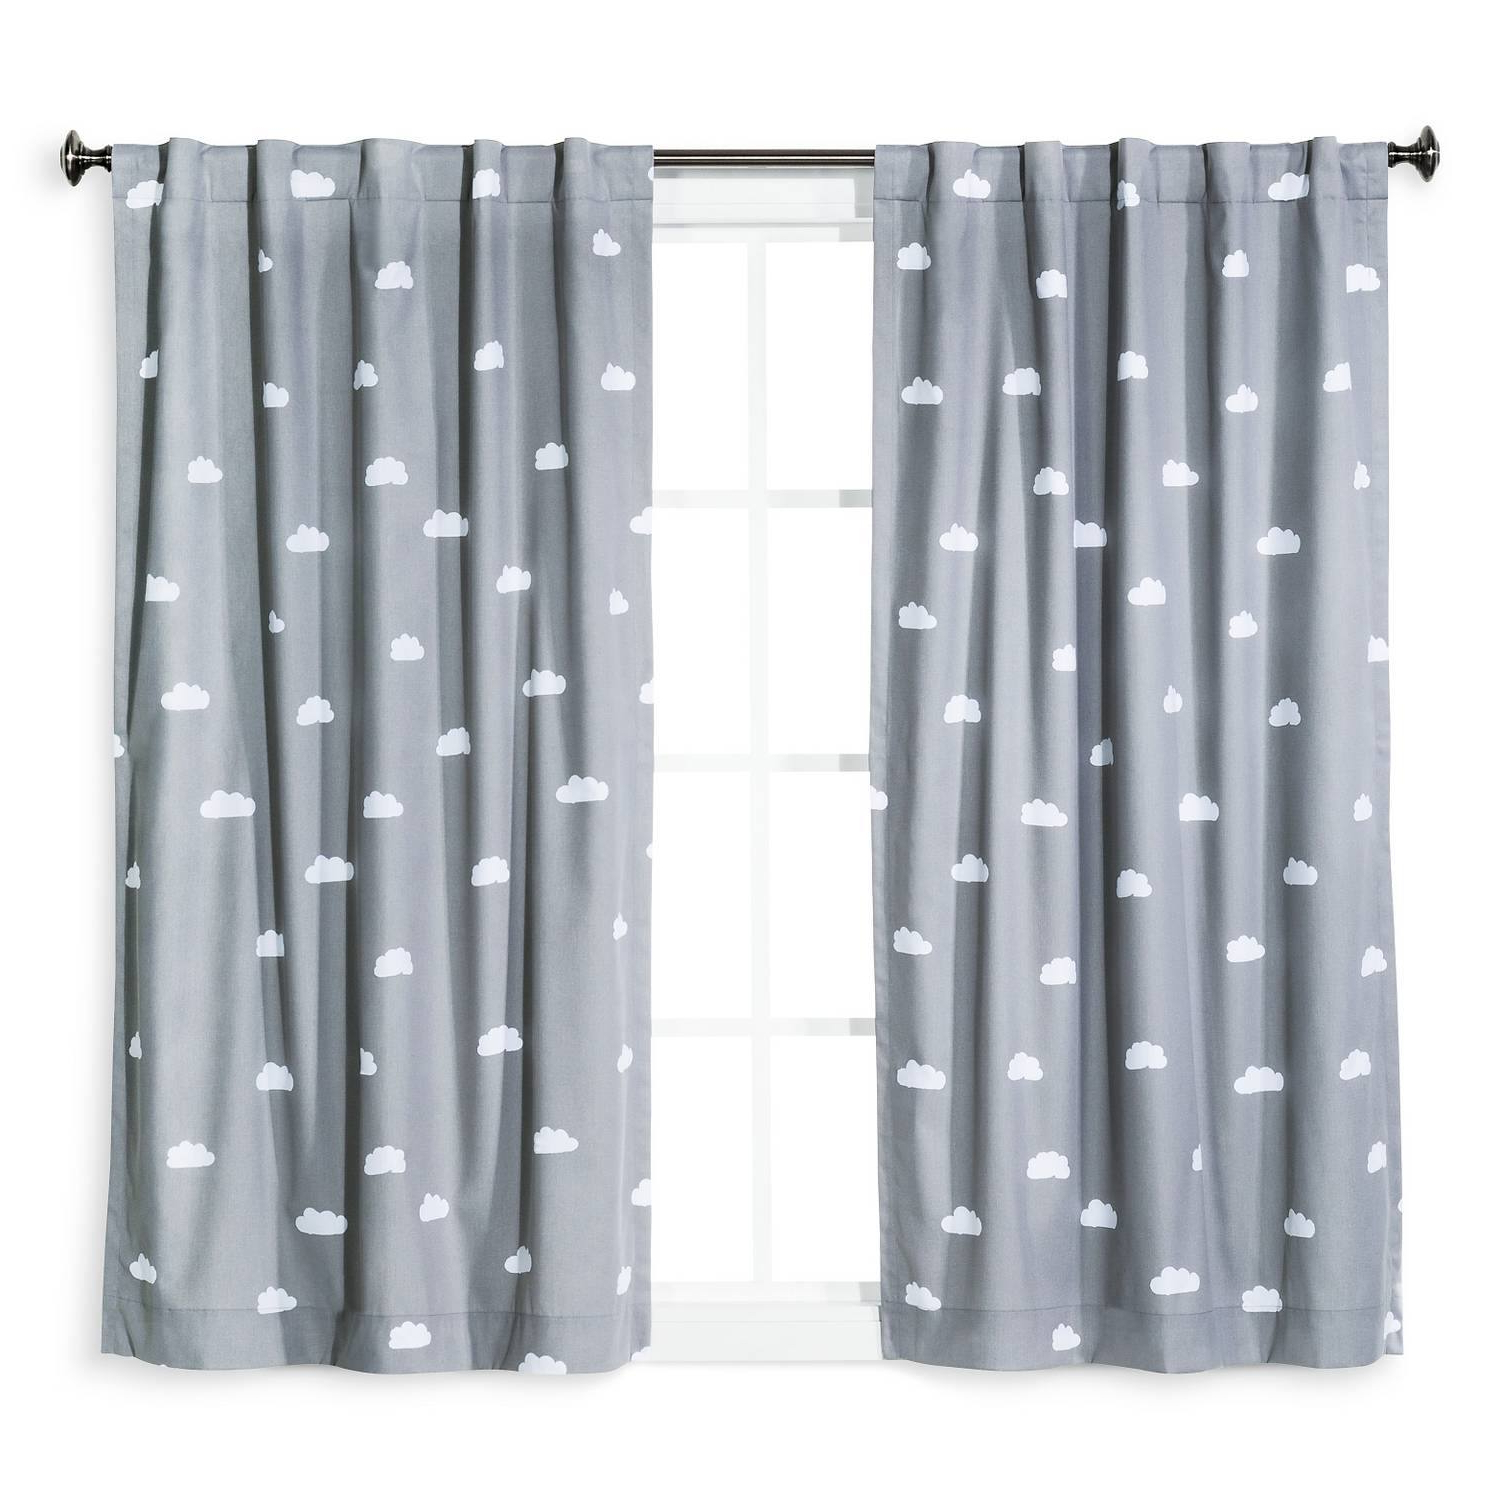 Sunsmart Dahlia Paisley Printed Total Blackout Single Window Curtain Panels Within Current Total Blackout Curtains Canada (View 16 of 20)